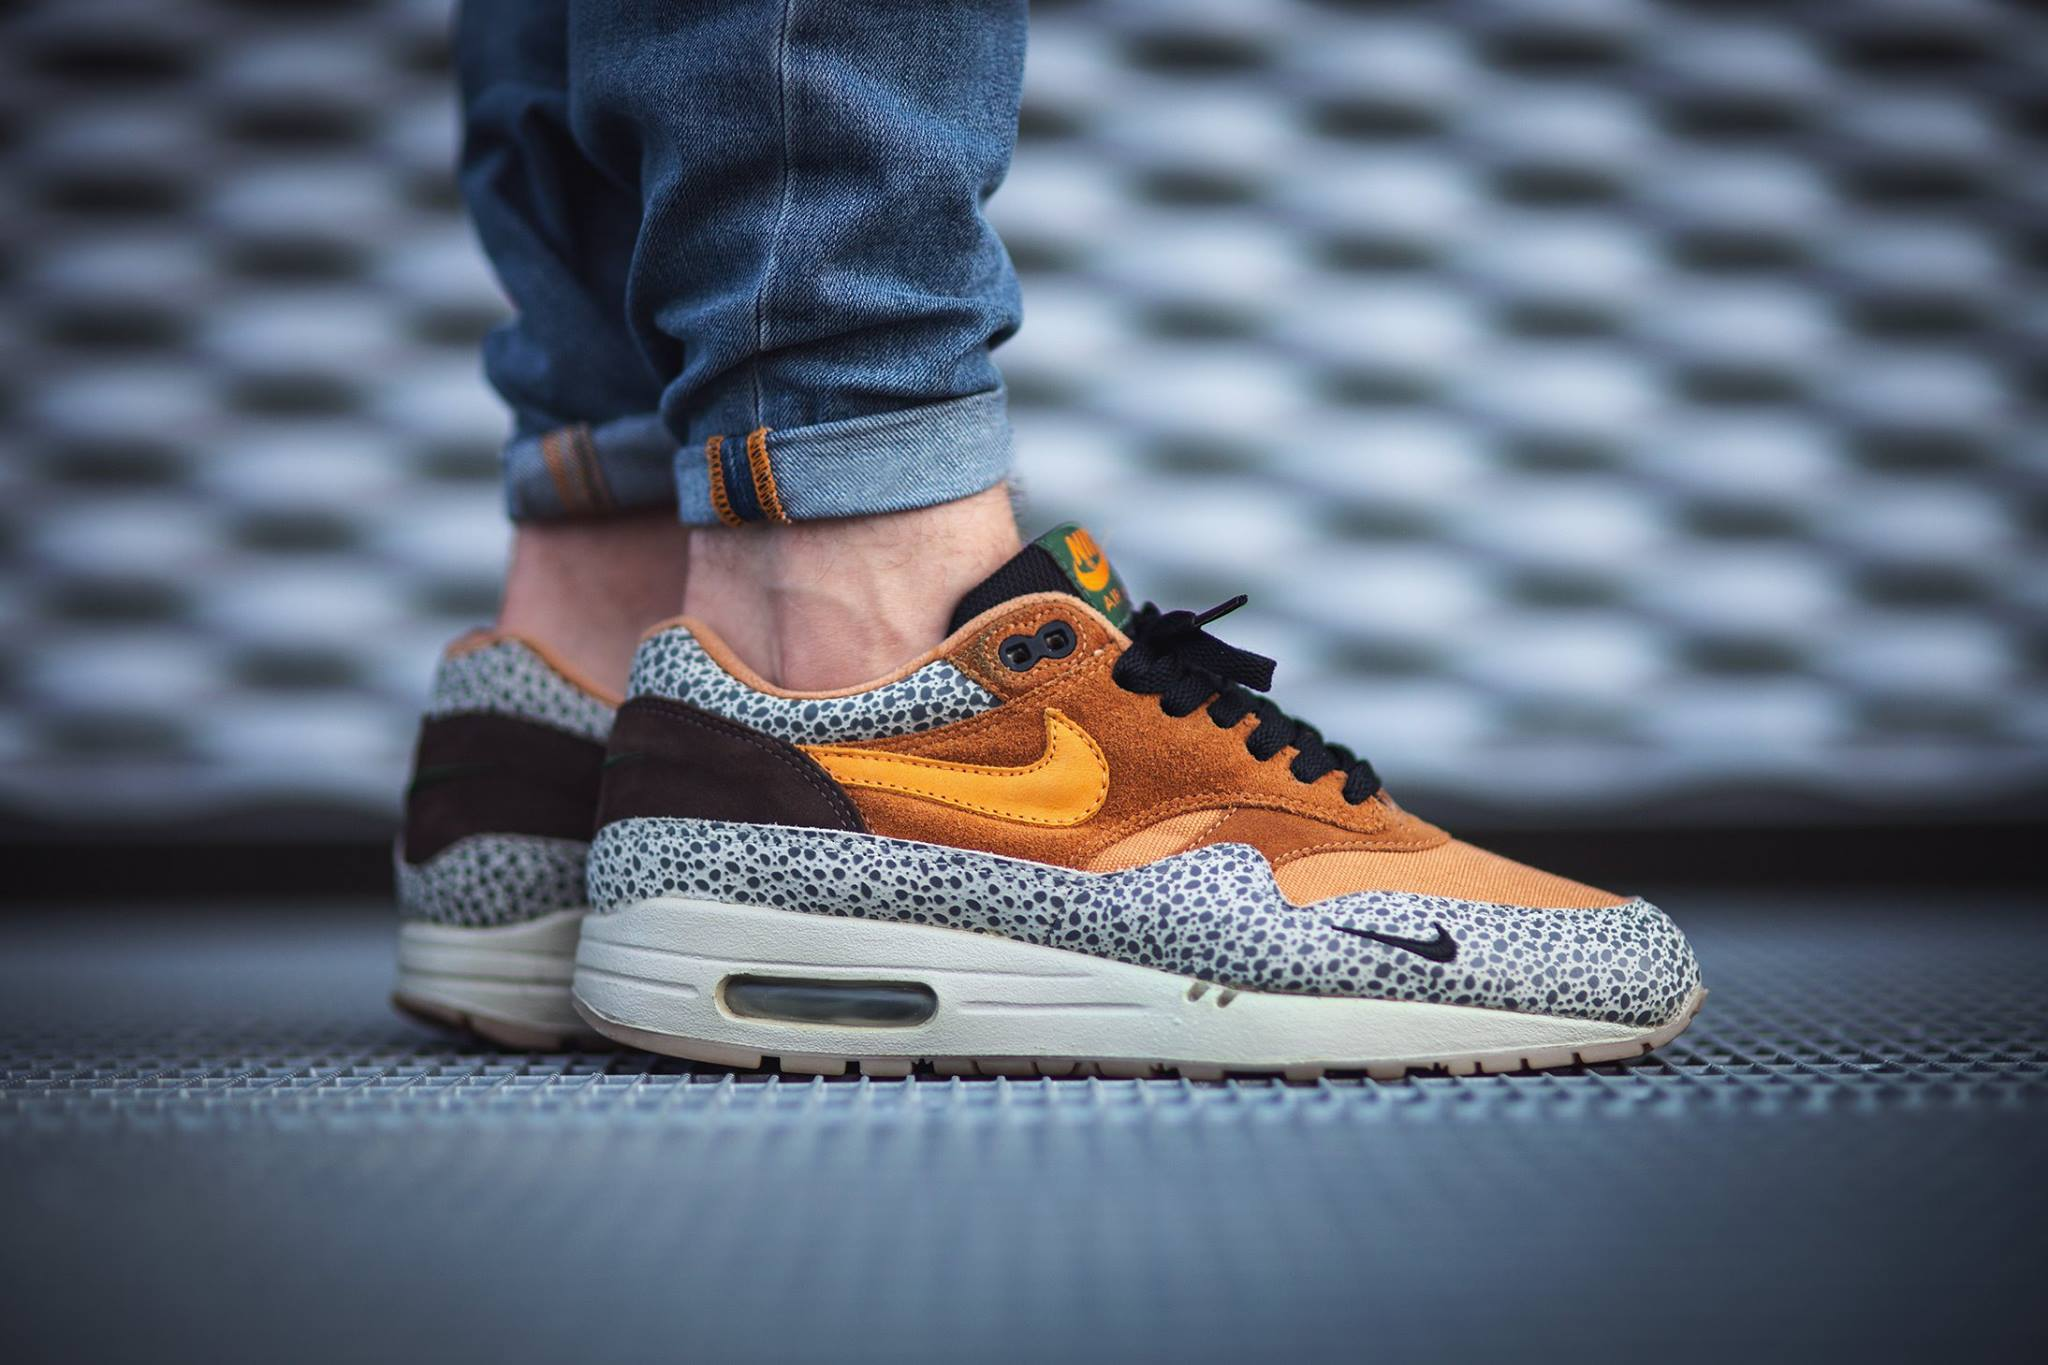 abacc2afd7 ... coupon code for nike air max 1 x atmos safari 2002 79b83 19a12 ...